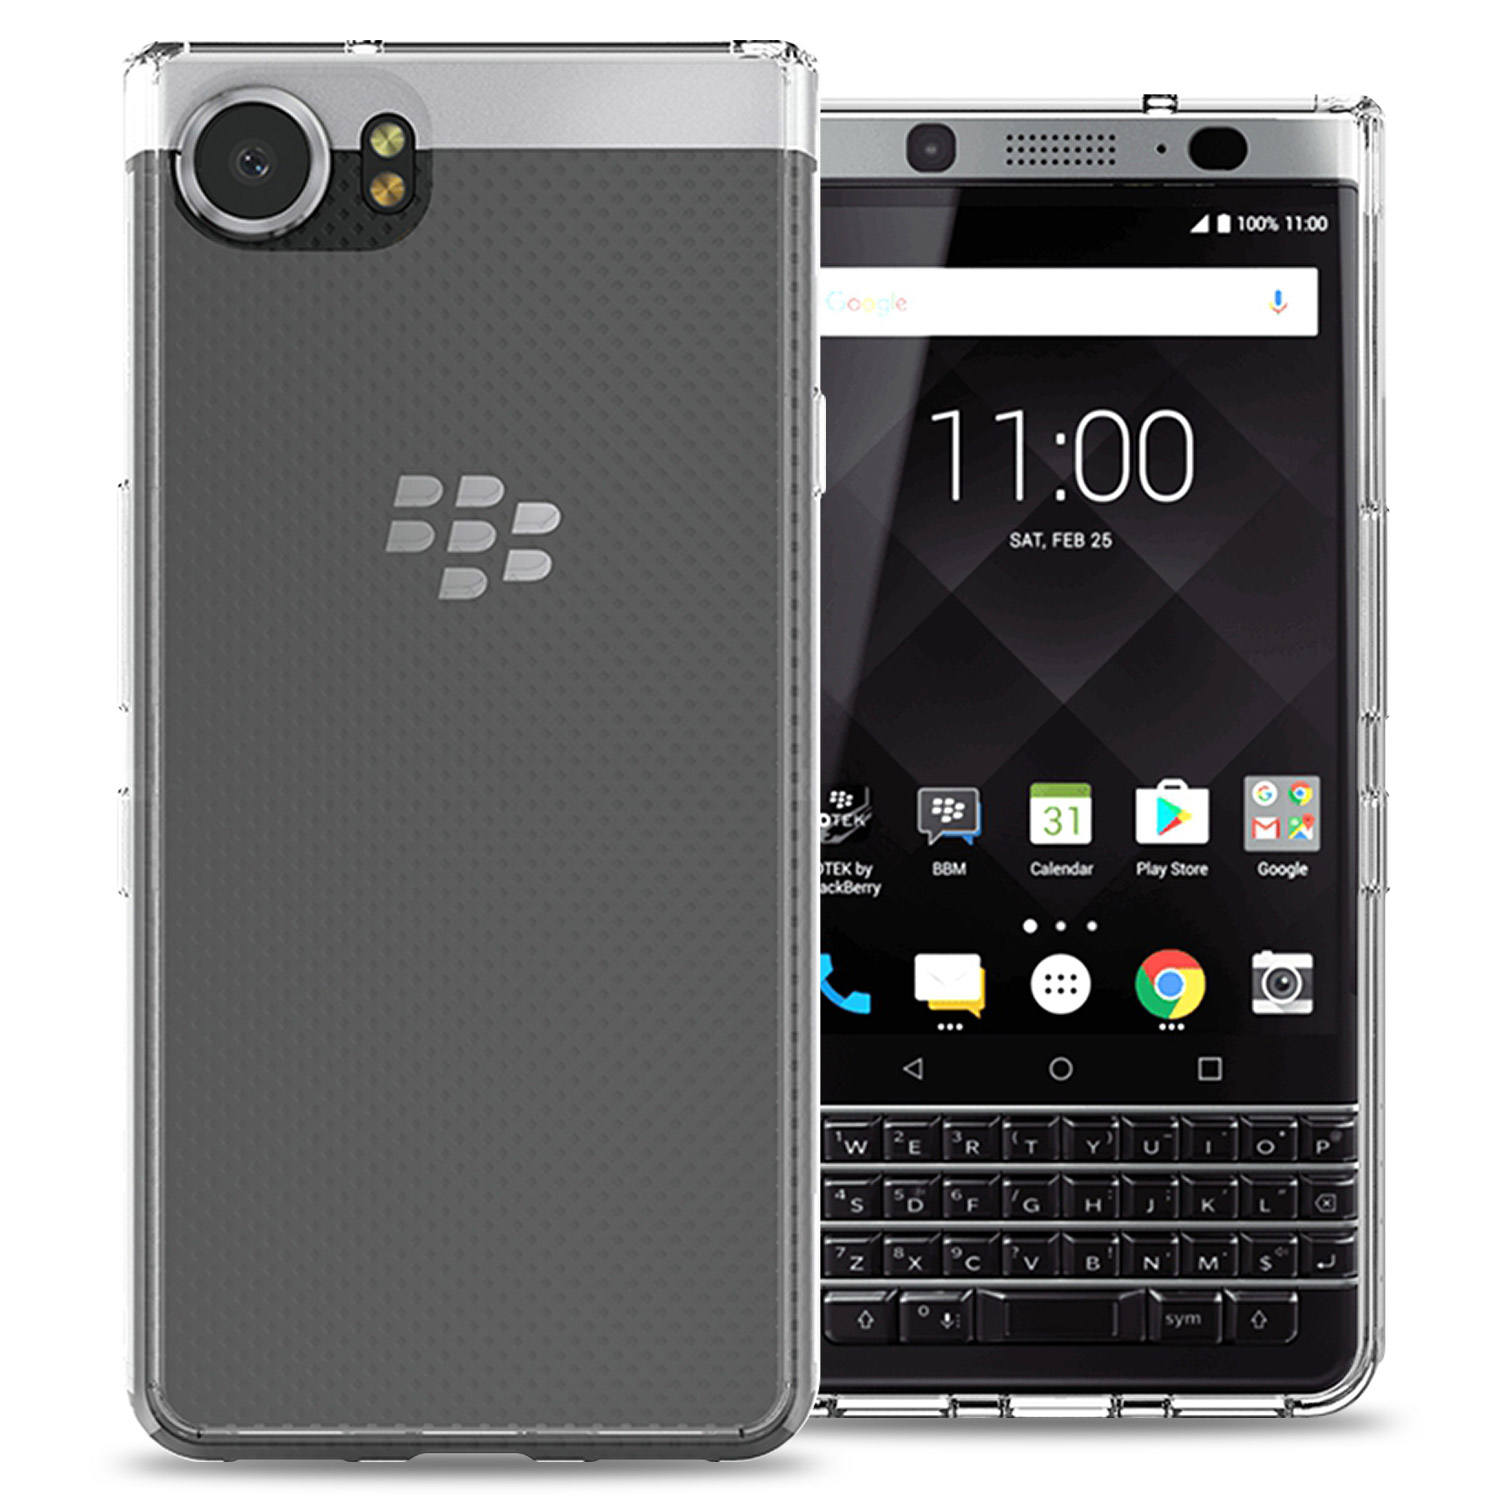 più economico 082be 2912e Details about For Blackberry KEYone Case Hard Back TPU Bumper Slim Hybrid  Phone Cover